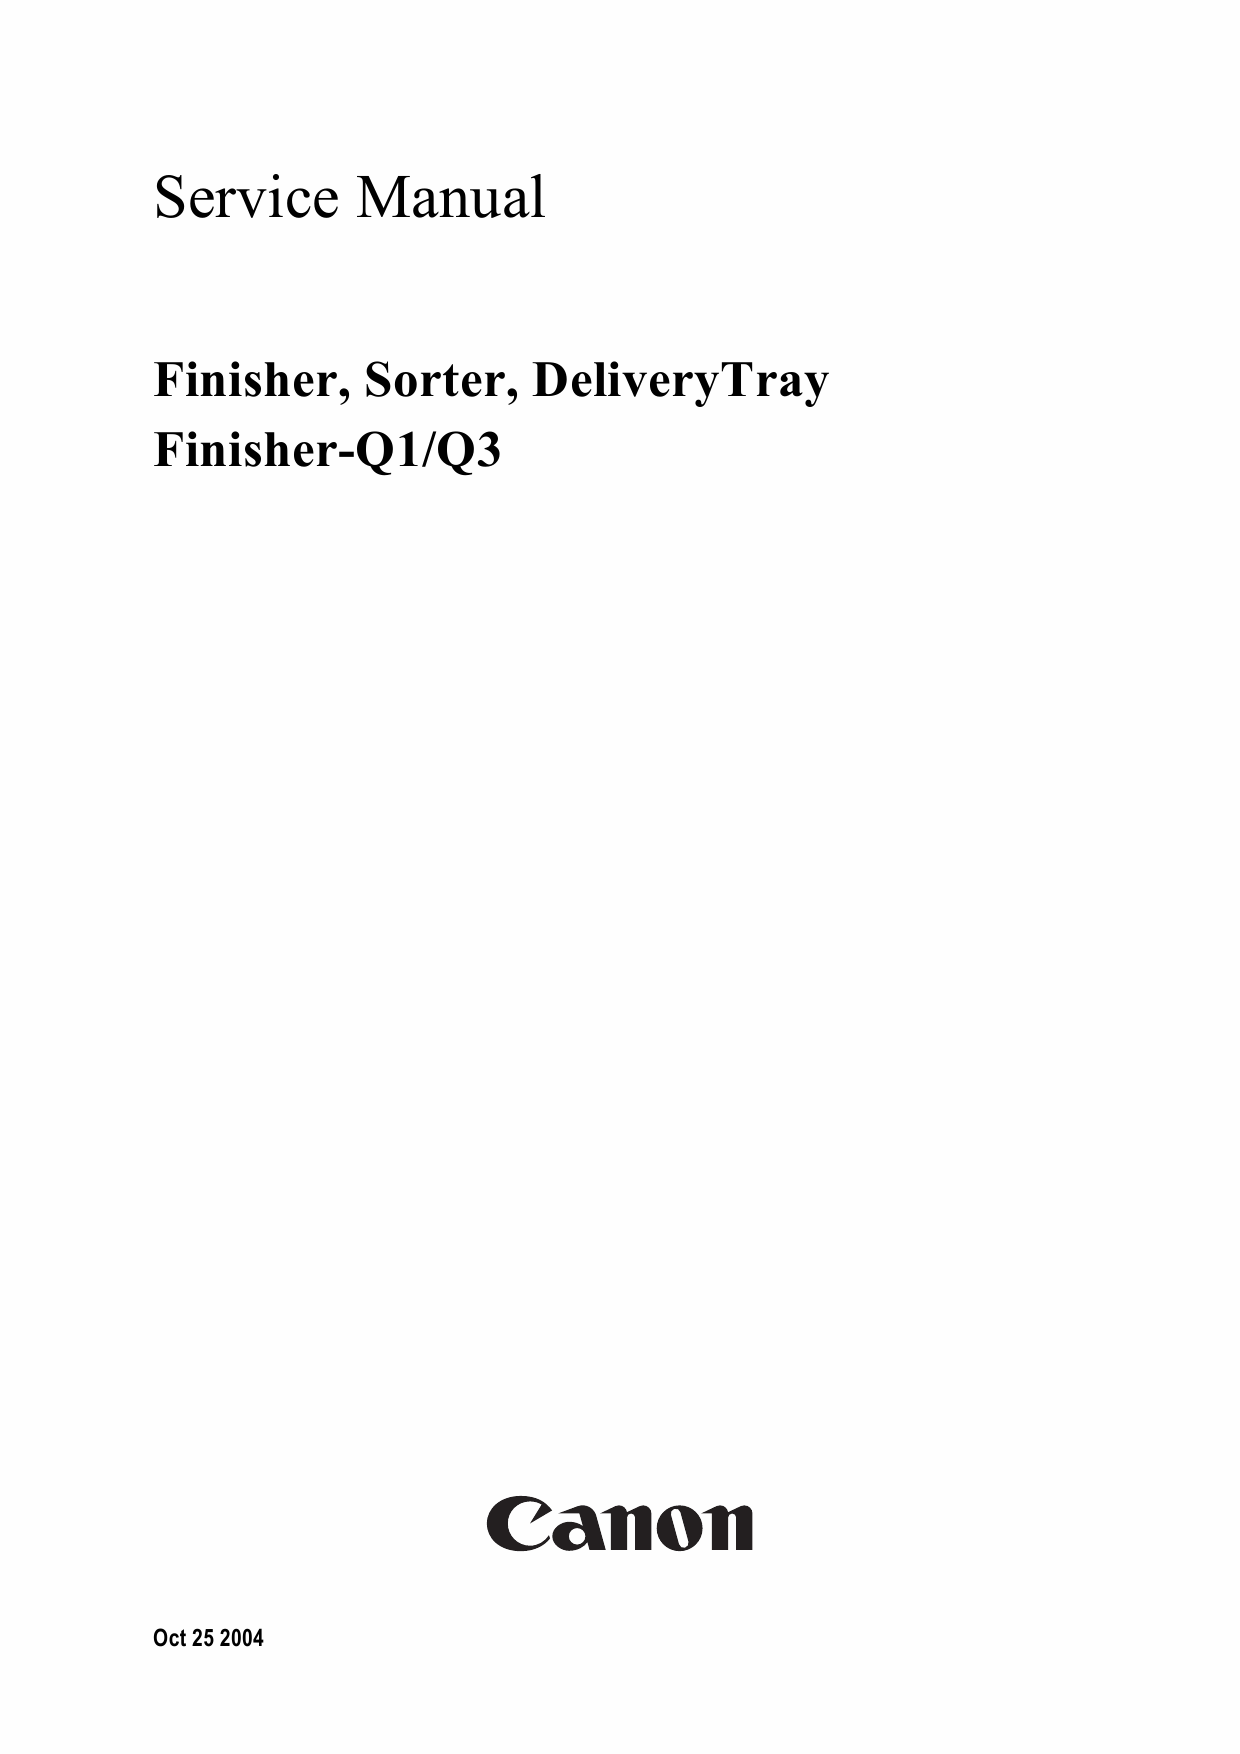 Canon Options Finisher-Q3 Q1 Sorter DeliveryTray Puncher Service Manual-1